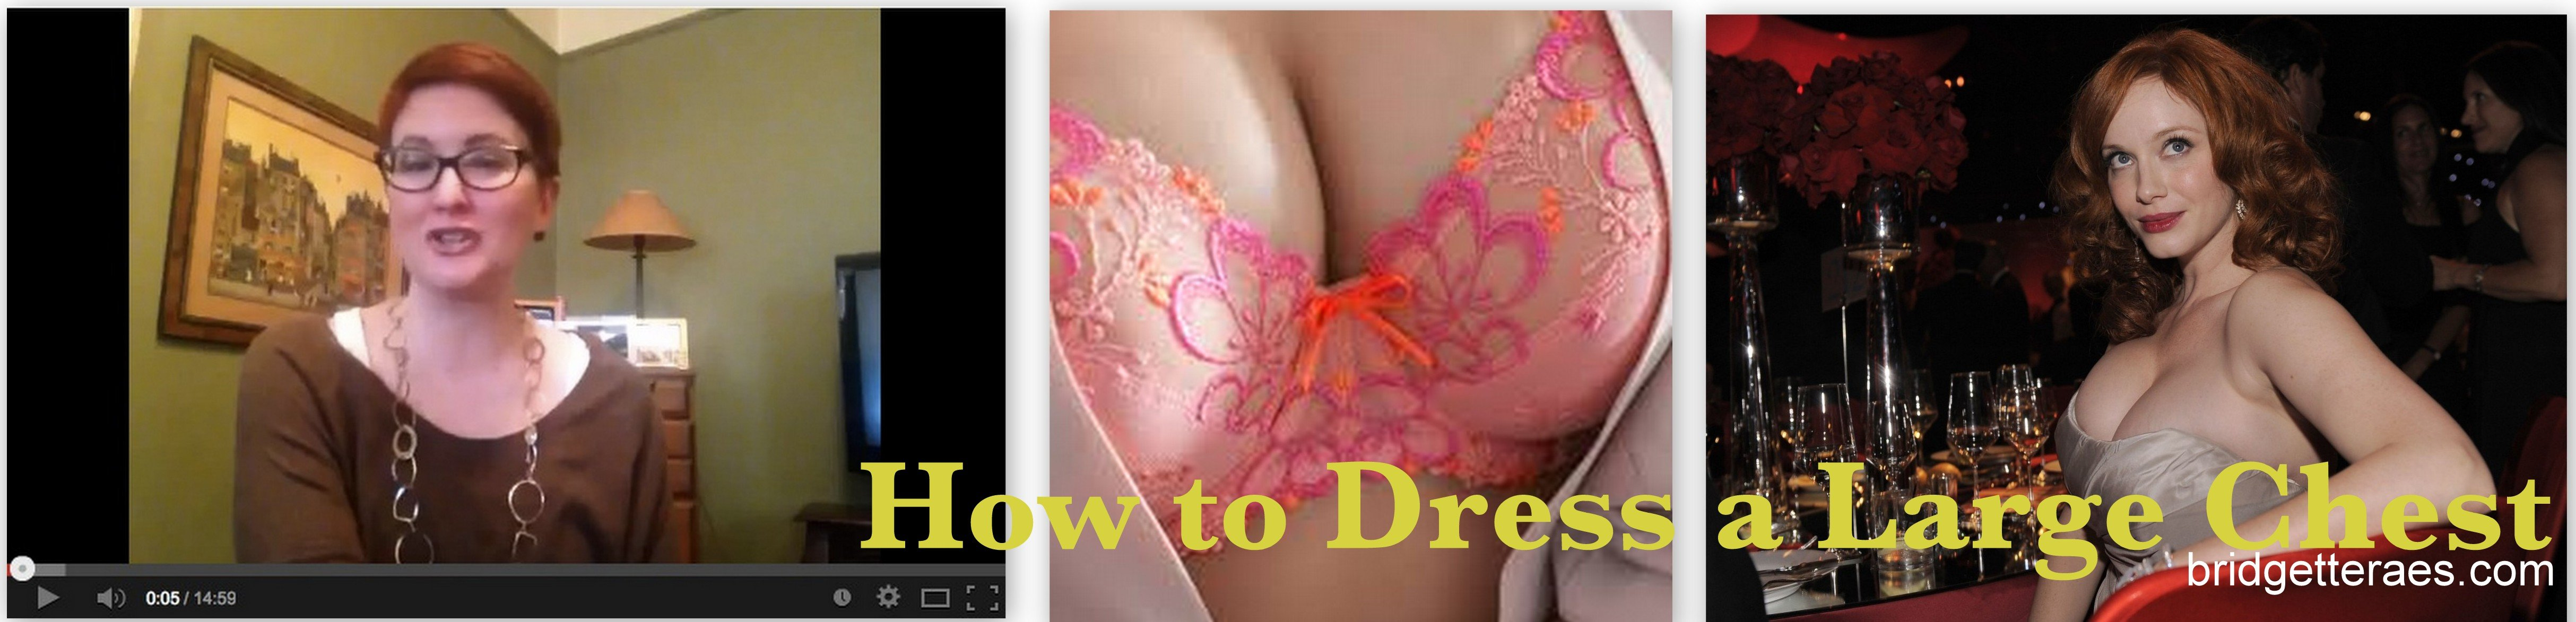 How to Dress a Large Chest (Video)